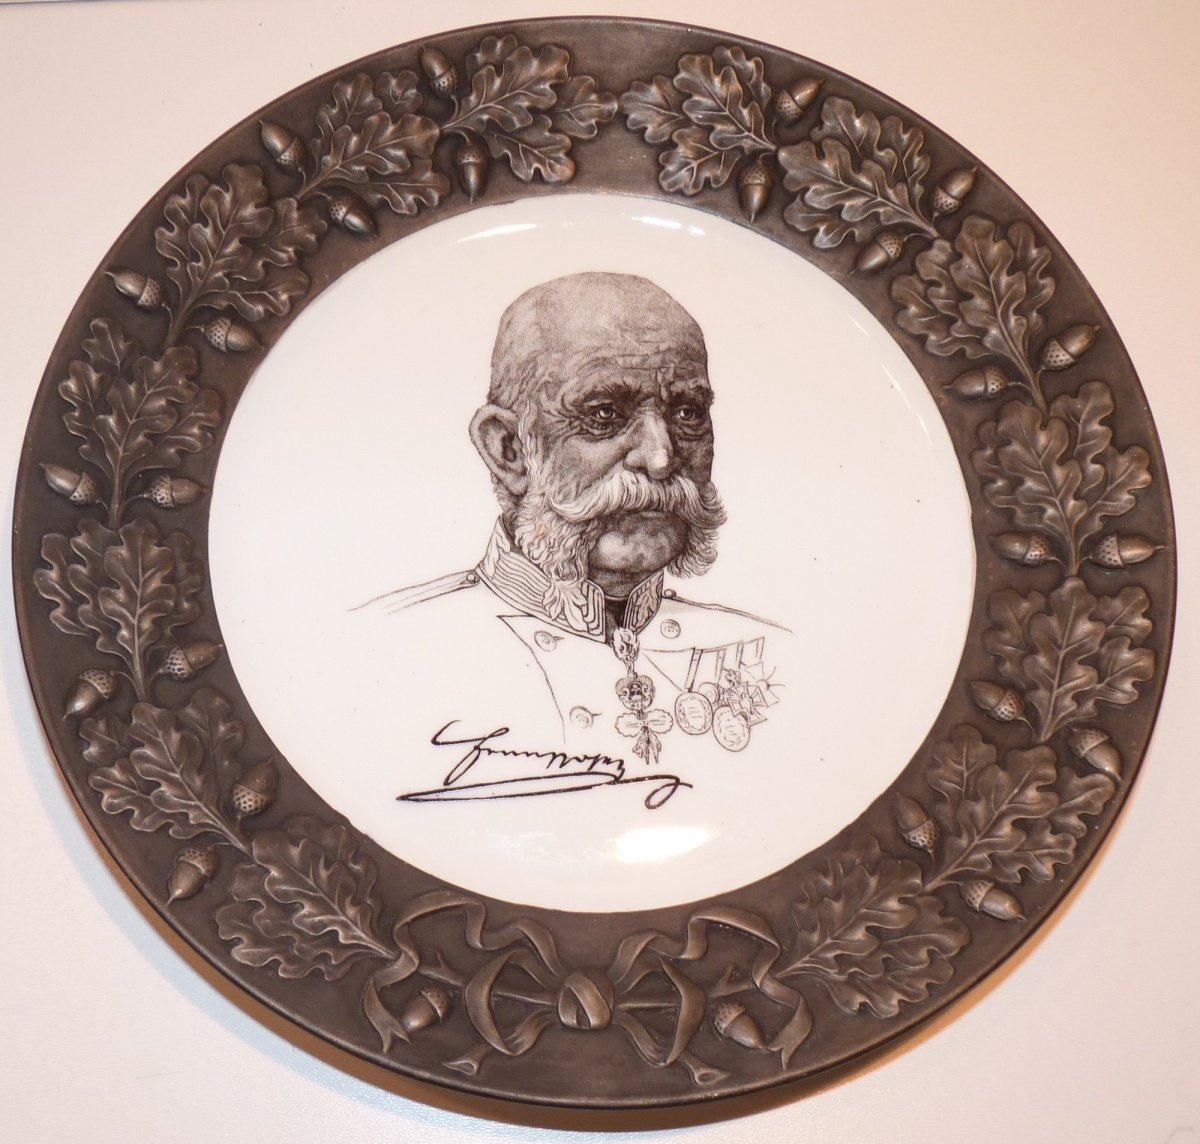 Plate with cartoons portrait of Franz Joseph I.